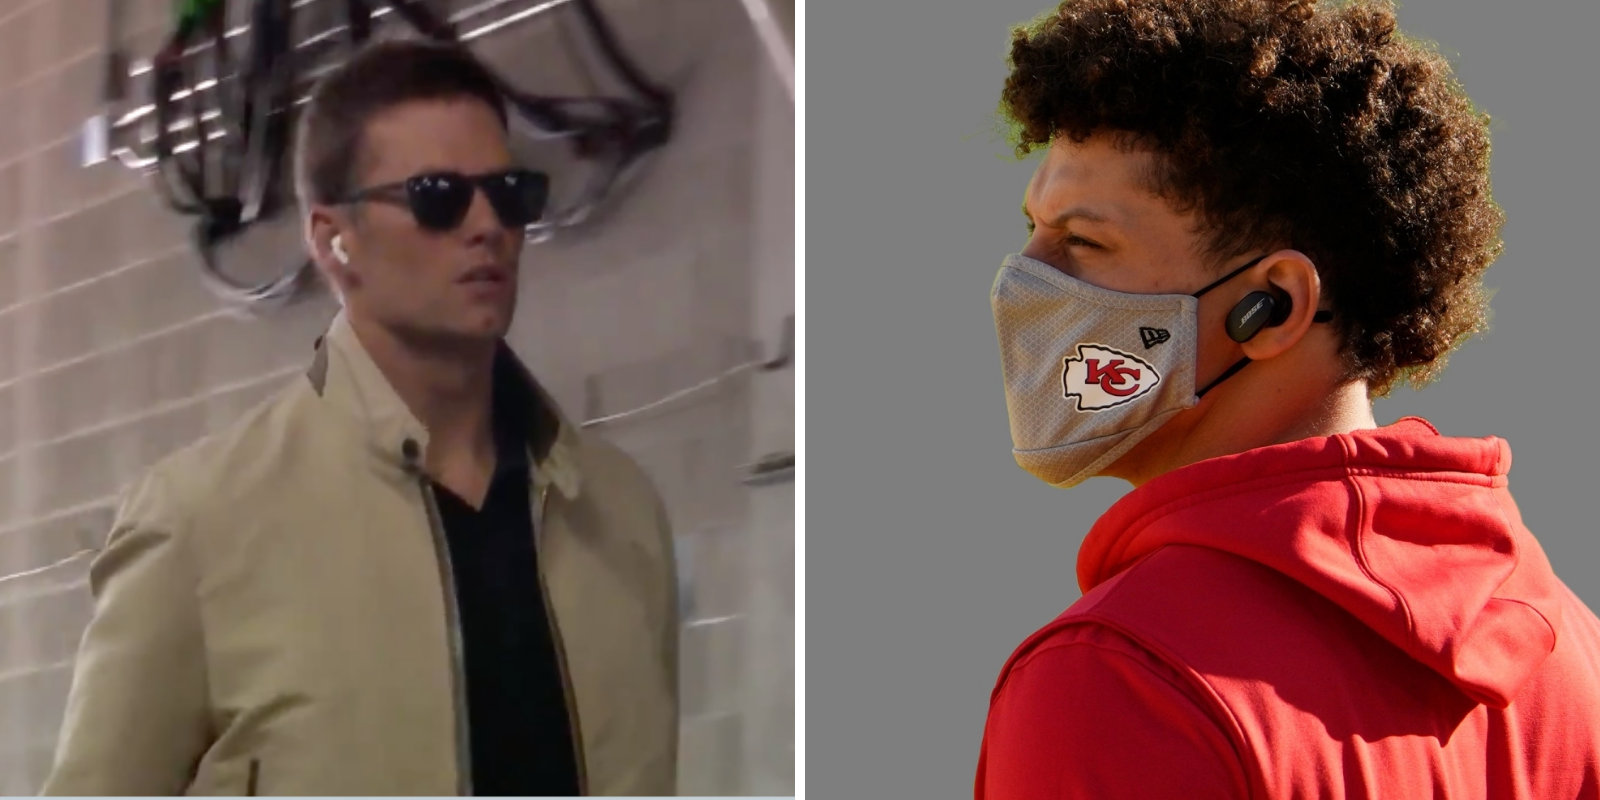 Liberals are triggered by Tom Brady not wearing a mask before Super Bowl